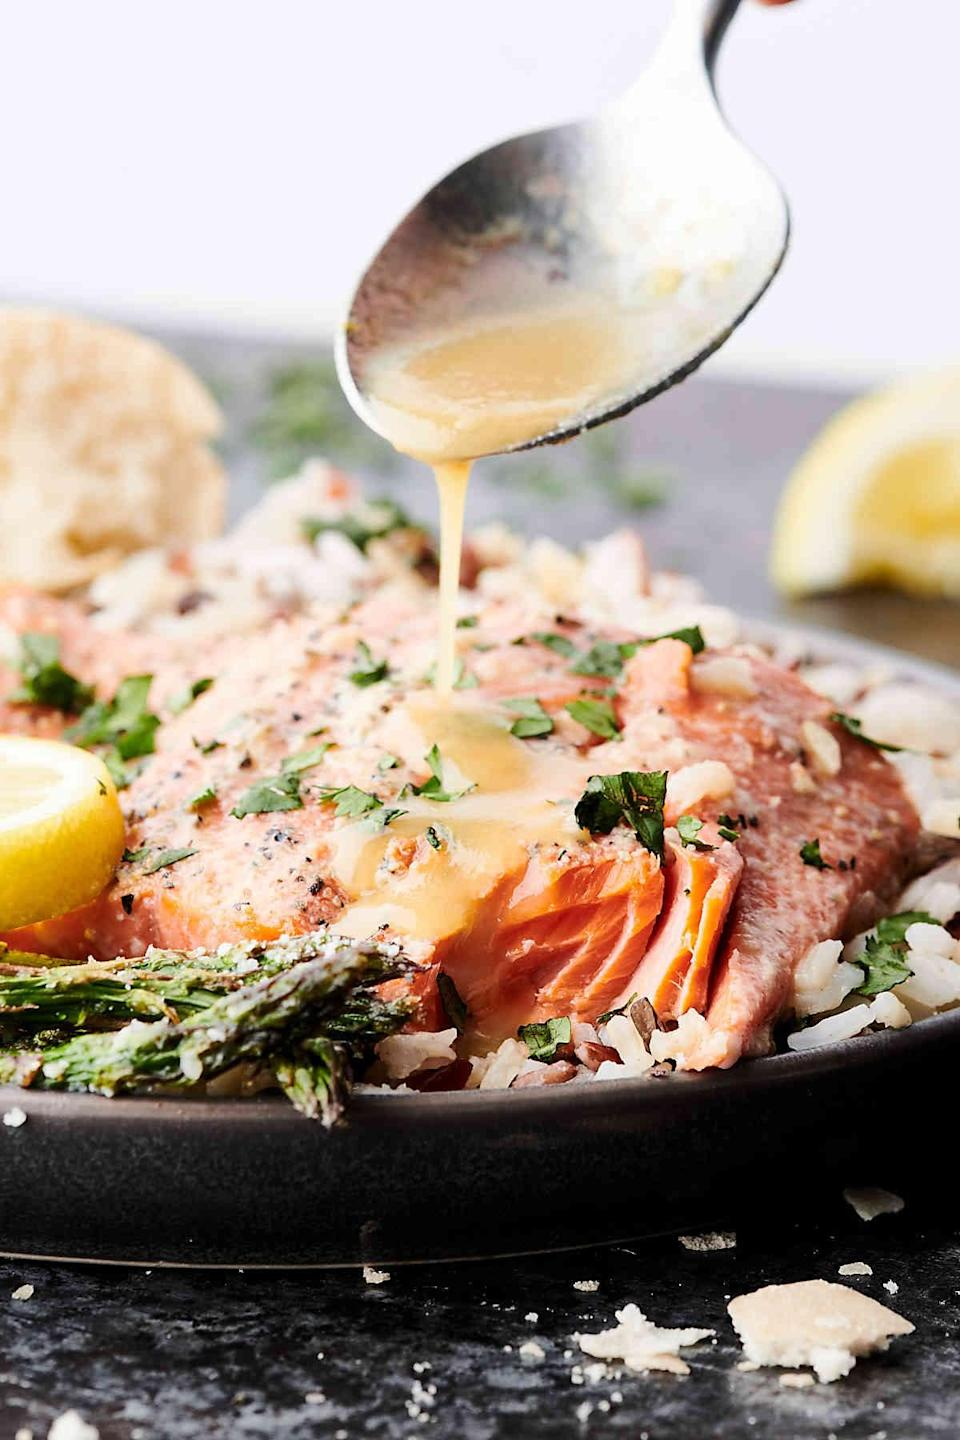 """<p>You can't go wrong with salmon on the menu, and this recipe is a dinnertime winner. You just need a handful of ingredients to concoct this easy meal, and before you know it, you'll be ready for more. Tweak the recipe for two people by noting the number two where it says """"yield.""""</p> <p><strong>Get the recipe:</strong> <a href=""""https://showmetheyummy.com/easy-lemon-honey-baked-salmon-recipe/#recipe"""" class=""""link rapid-noclick-resp"""" rel=""""nofollow noopener"""" target=""""_blank"""" data-ylk=""""slk:lemon honey baked salmon"""">lemon honey baked salmon</a></p>"""